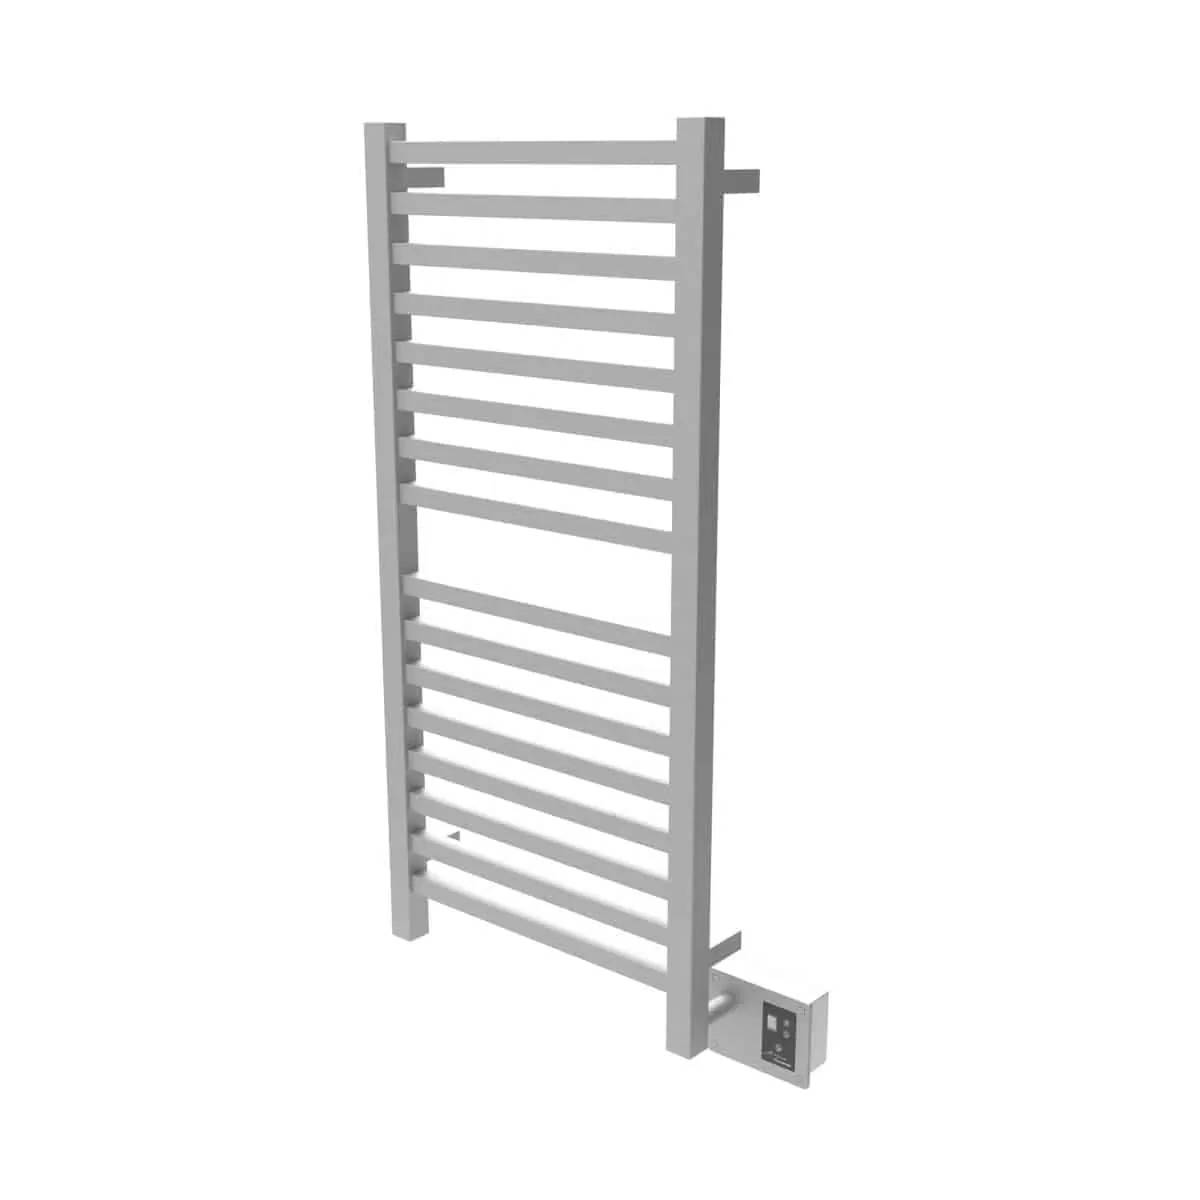 Amba Q2042B Quadro Heated Towel Rack - Brushed